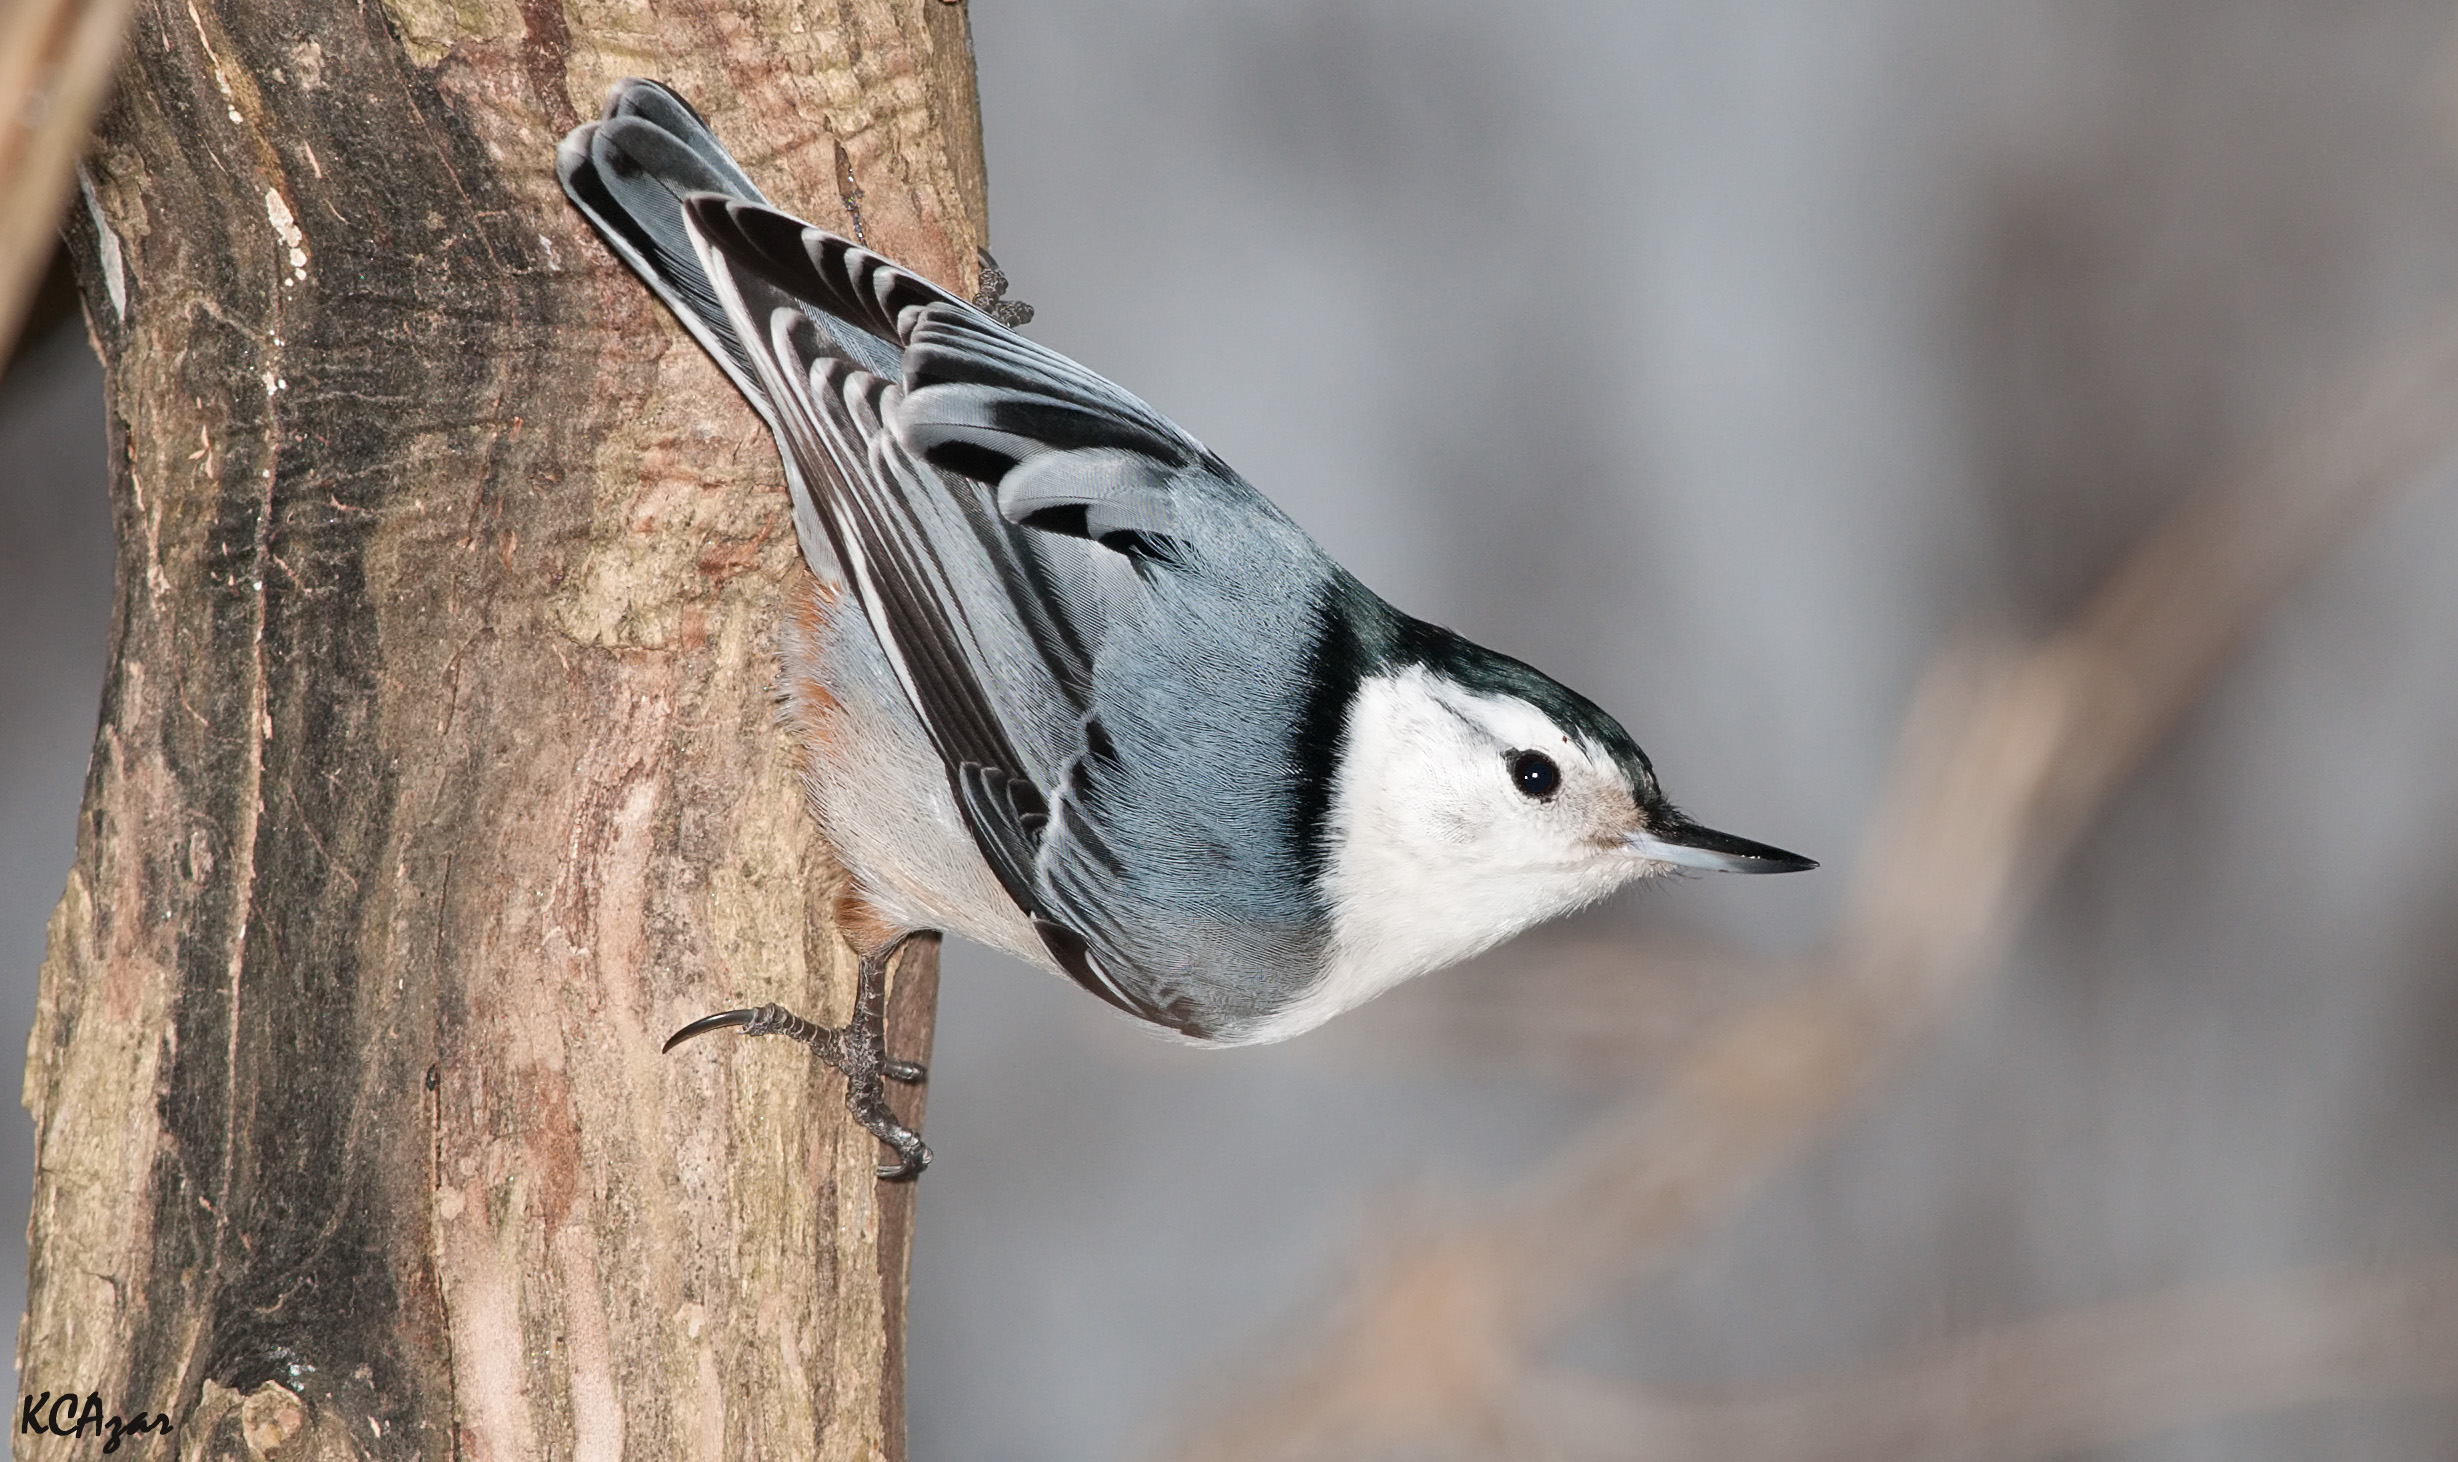 """- White-breasted Nuthatch (Sitta carolinensis)White-breasted Nuthatches are the largest among nuthatches and live mostly in deciduous forests. They eat seeds, insects, and nuts. White-breasted Nuthatches are most likely going to be seen hanging upside down on the sides of trees due to their strong feet. They have a wingspan of 7.9-10.6 in. and weigh about 0.6-1.1 oz. Their common calls are both nasally and are a """"yank"""" and """"wha-wha-wha."""" They are protected on the US Migratory Bird lists.Photo Credits: Kelly Colgan Azar"""